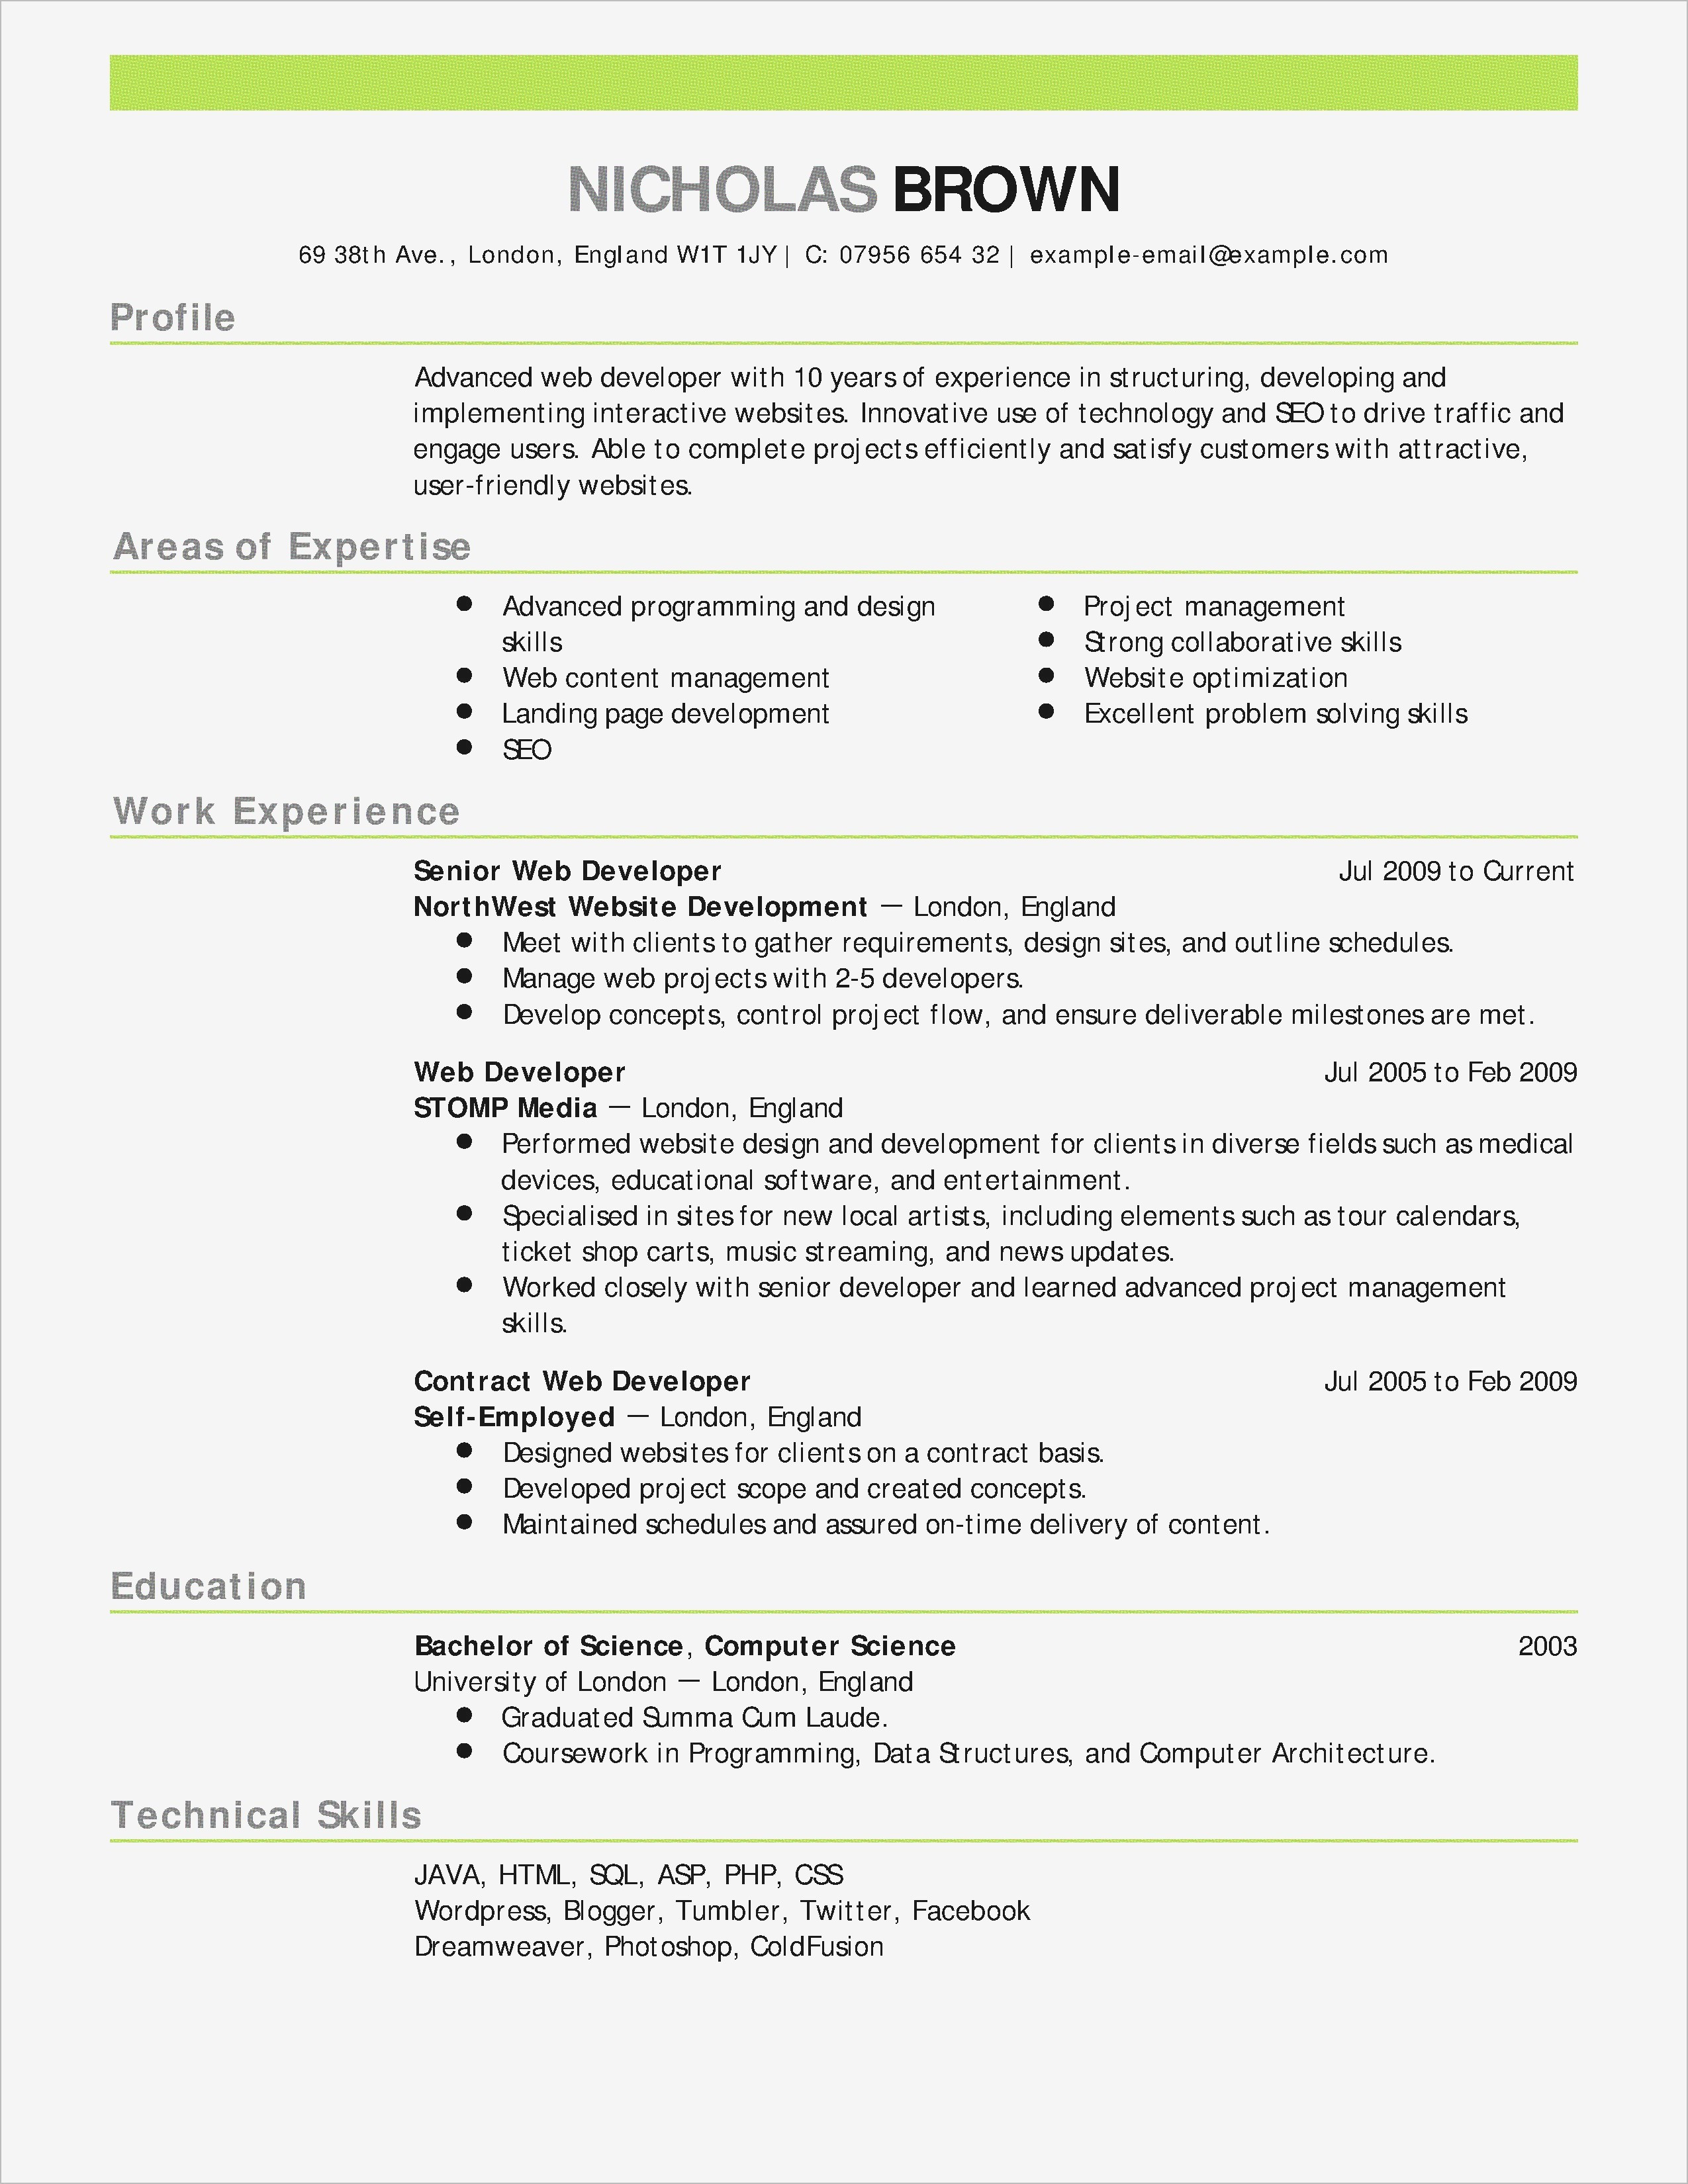 Example Cover Letter for Resume - Maintenance Cover Letter Template Sample